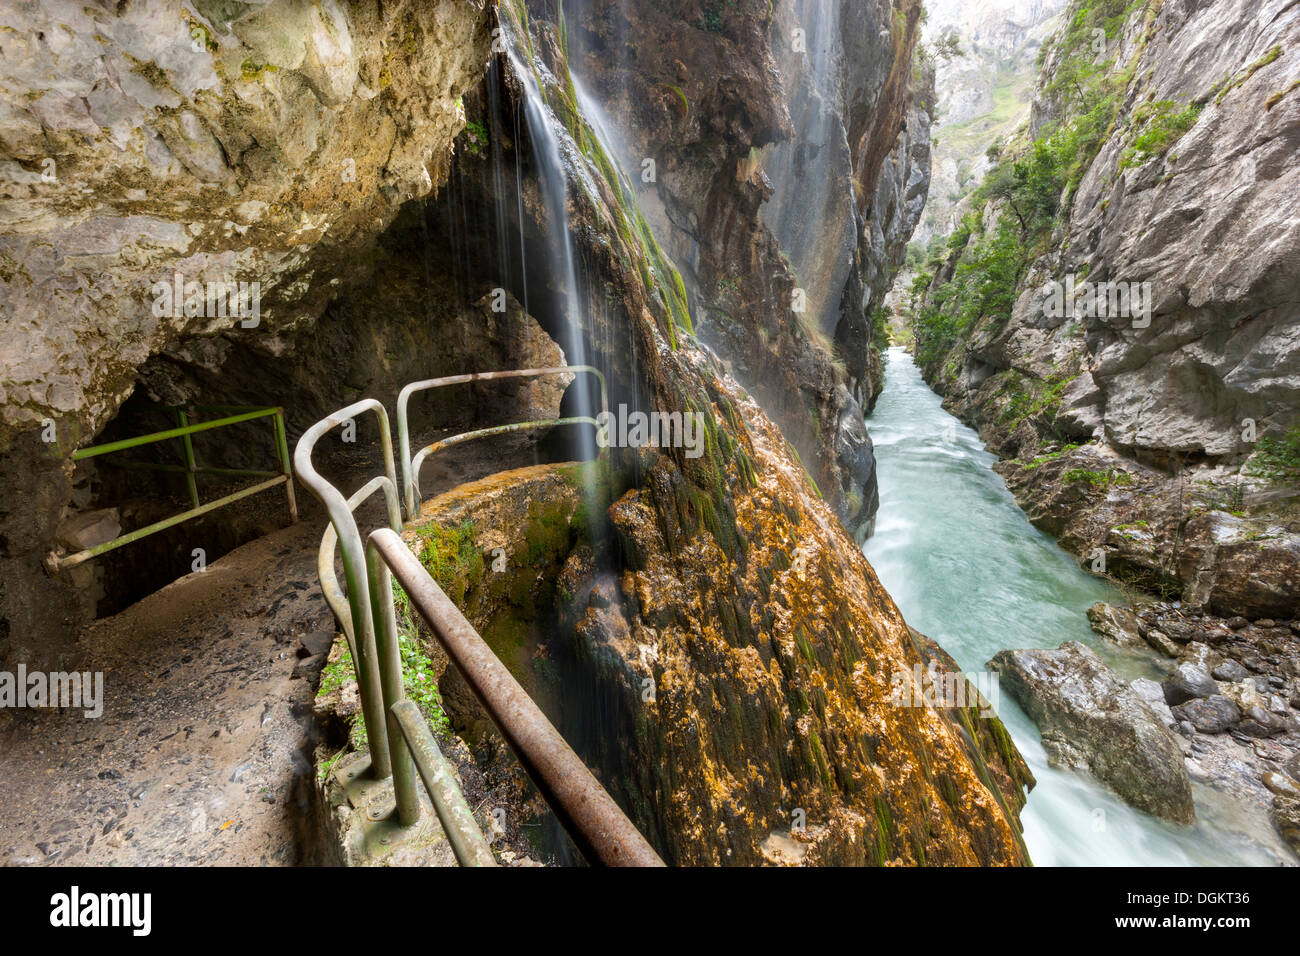 Cares Gorge footpath in the Picos de Europa National Park. - Stock Image